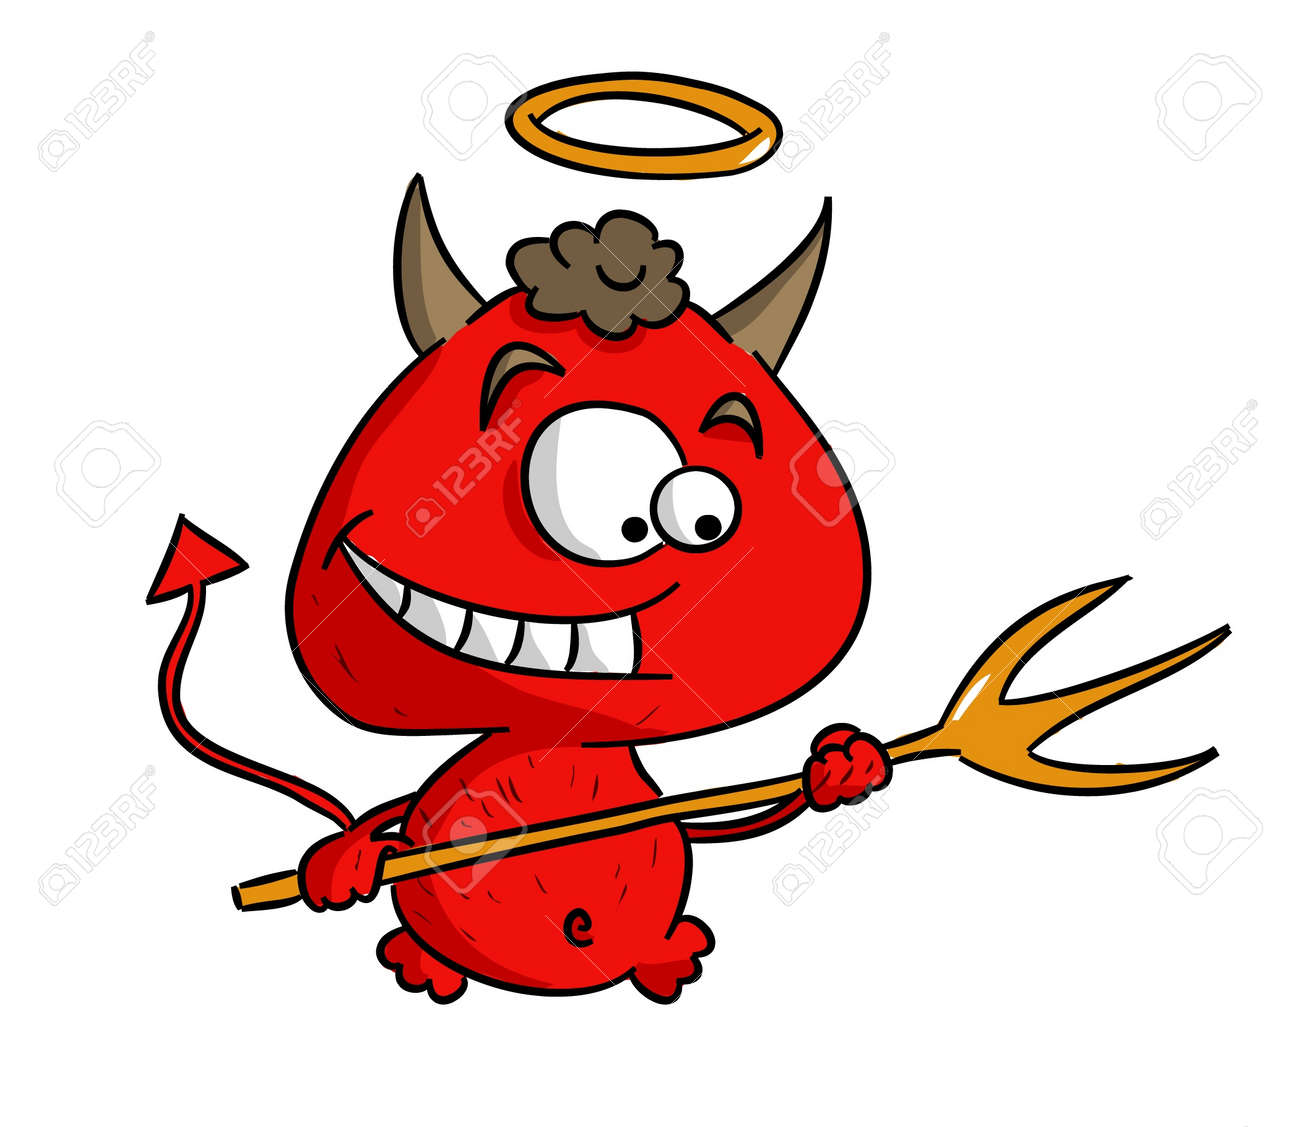 Image result for demon cartoon